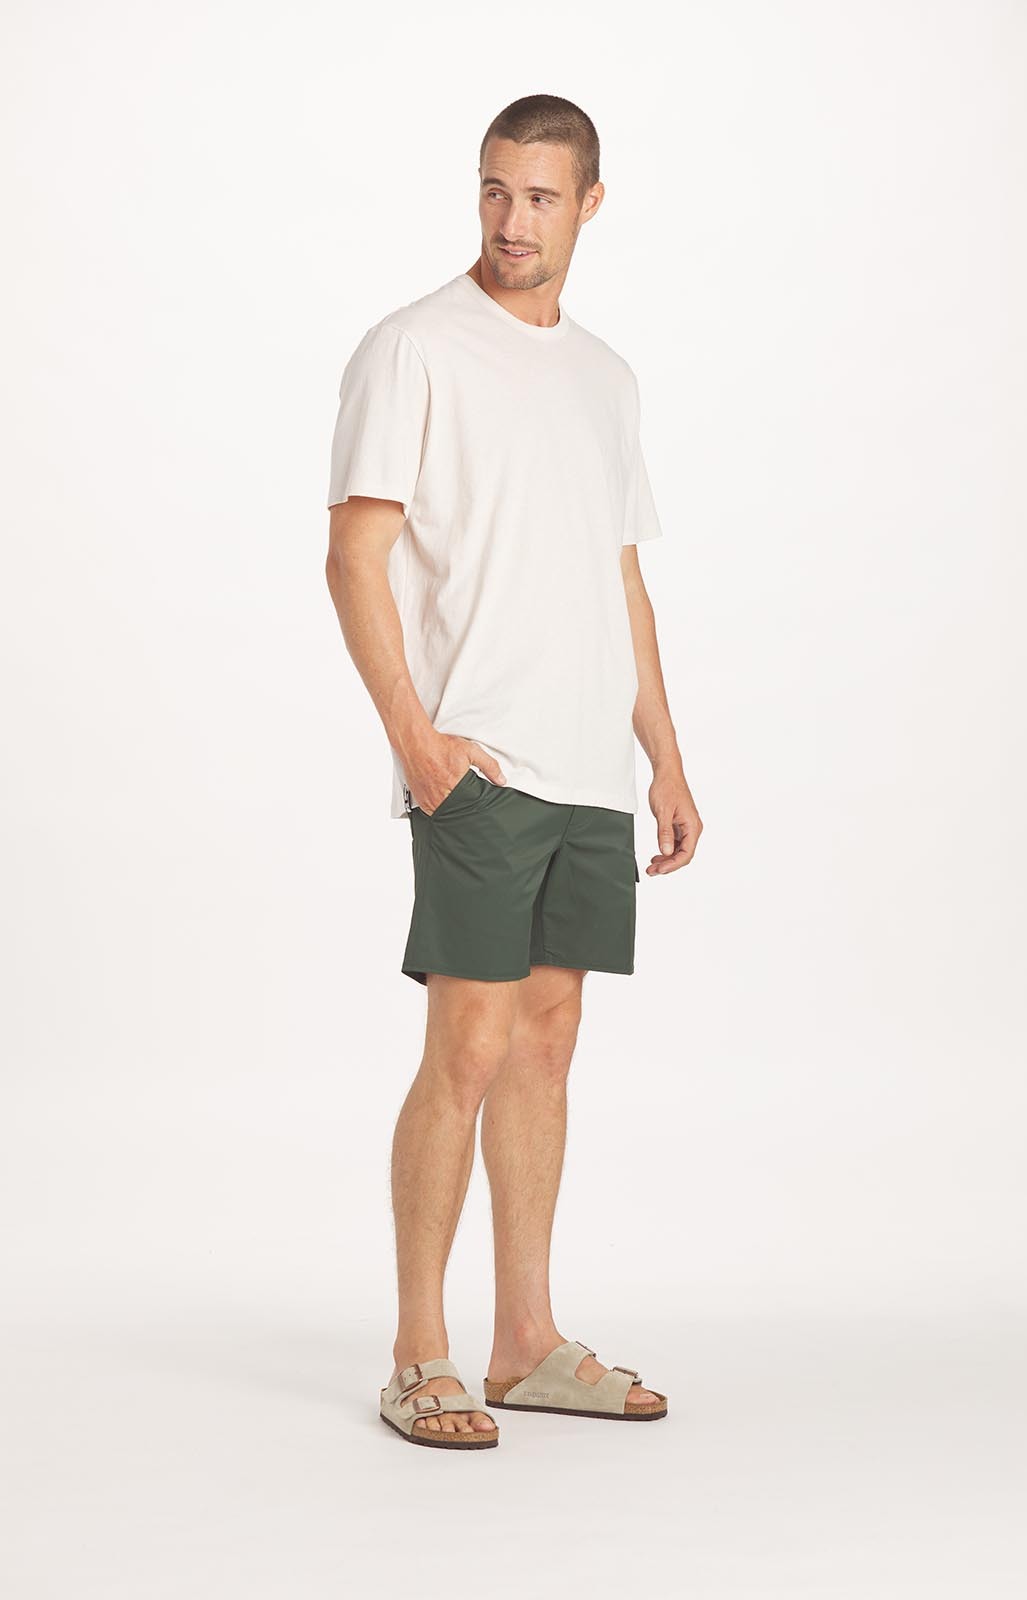 Model-Onmodel-in-studio-instudio-Damion-Lloyd-Photography-Commercial-Product-Apparel-Clothing-Los-Angeles-Orange-County-female-male-man-woman-PAKA-Apparel-tan-green-short